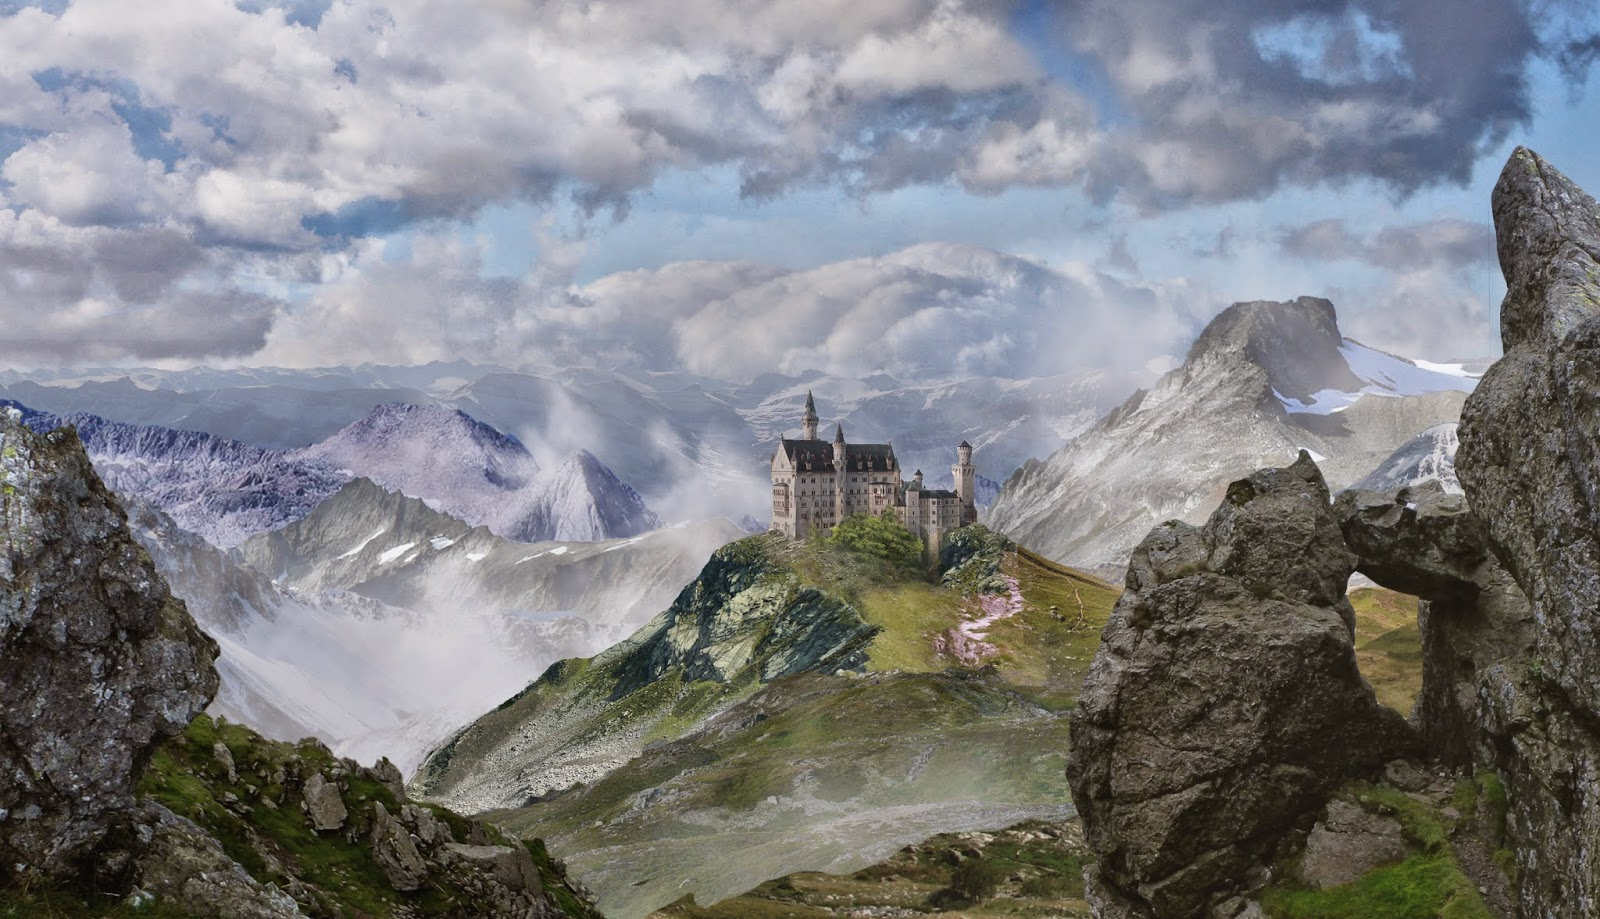 Katie alexander first attempt at matte painting using digital tutor tutorial created on photoshop currently putting together in maya to create a moving scene baditri Gallery